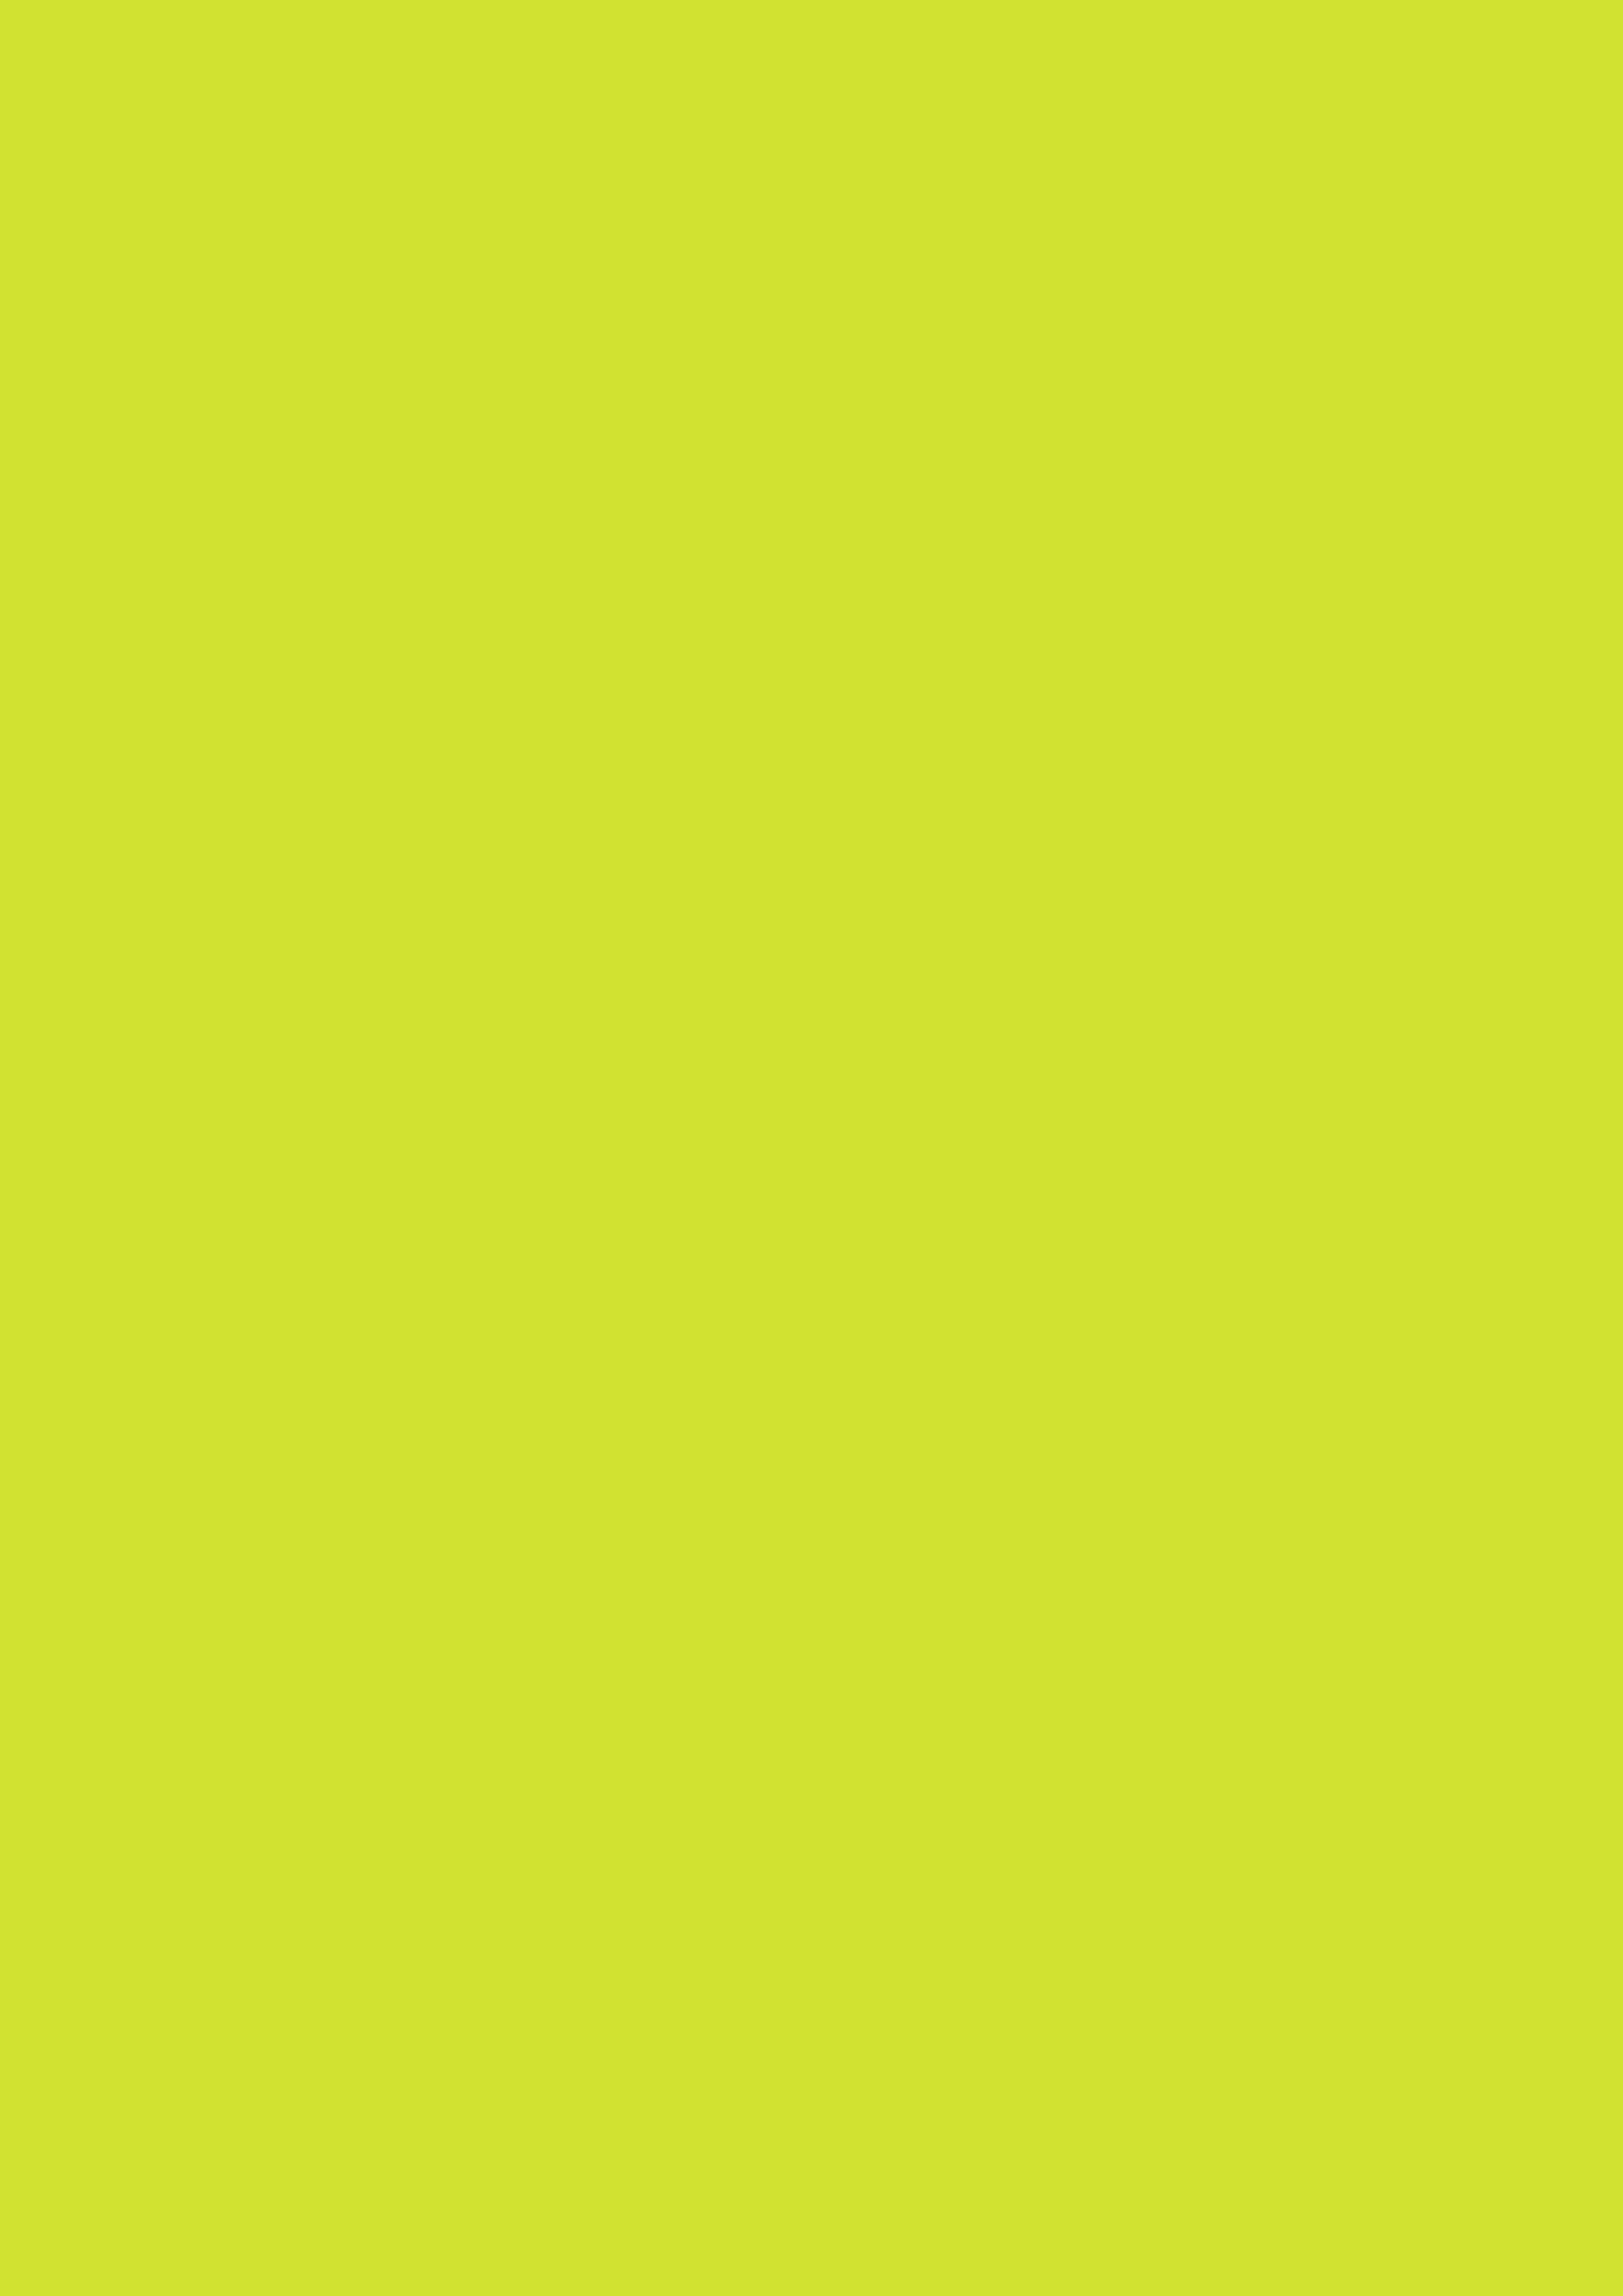 2480x3508 Pear Solid Color Background